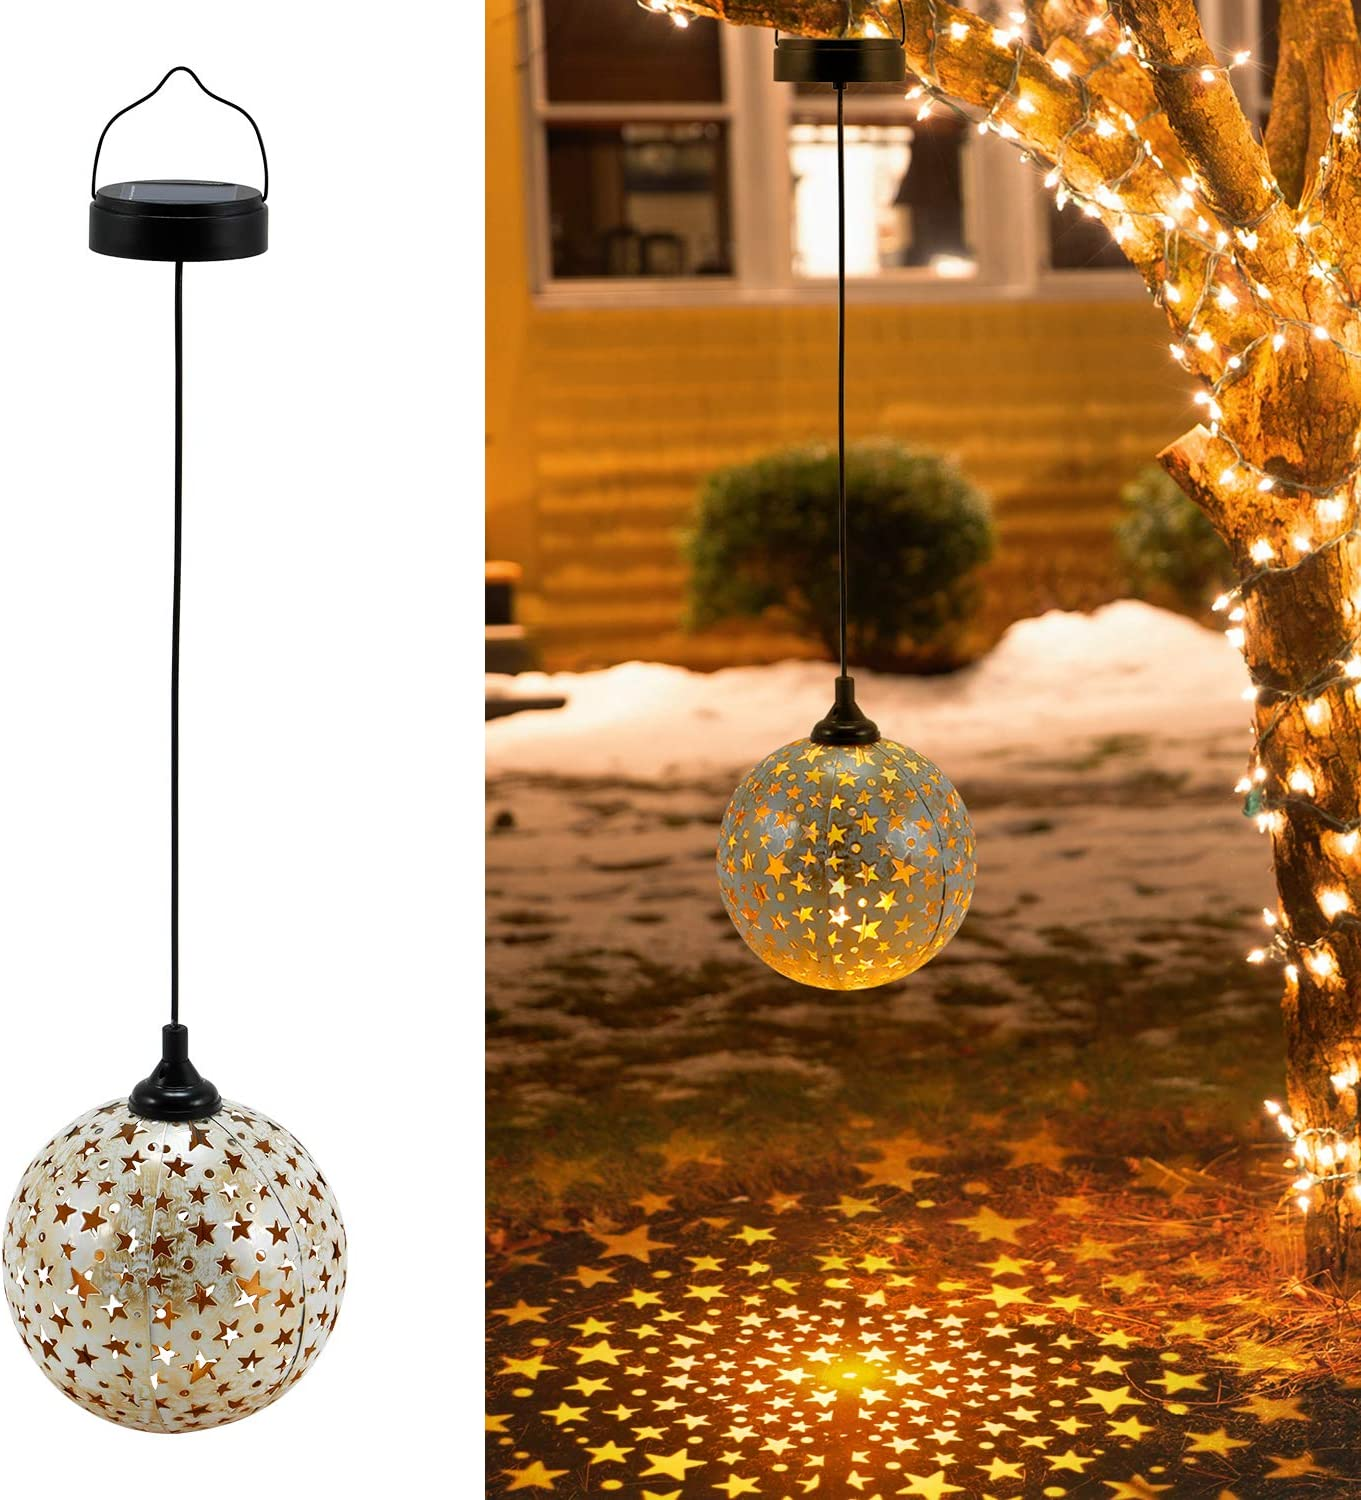 2 Pack Hanging Solar Lanterns, OxyLED Solar Light Outdoor, LED Star Lantern Solar Powered Waterproof, Decorative Retro Metal Solar Lights with Handle for Garden Patio Yard Pathway Tree Fence Christmas